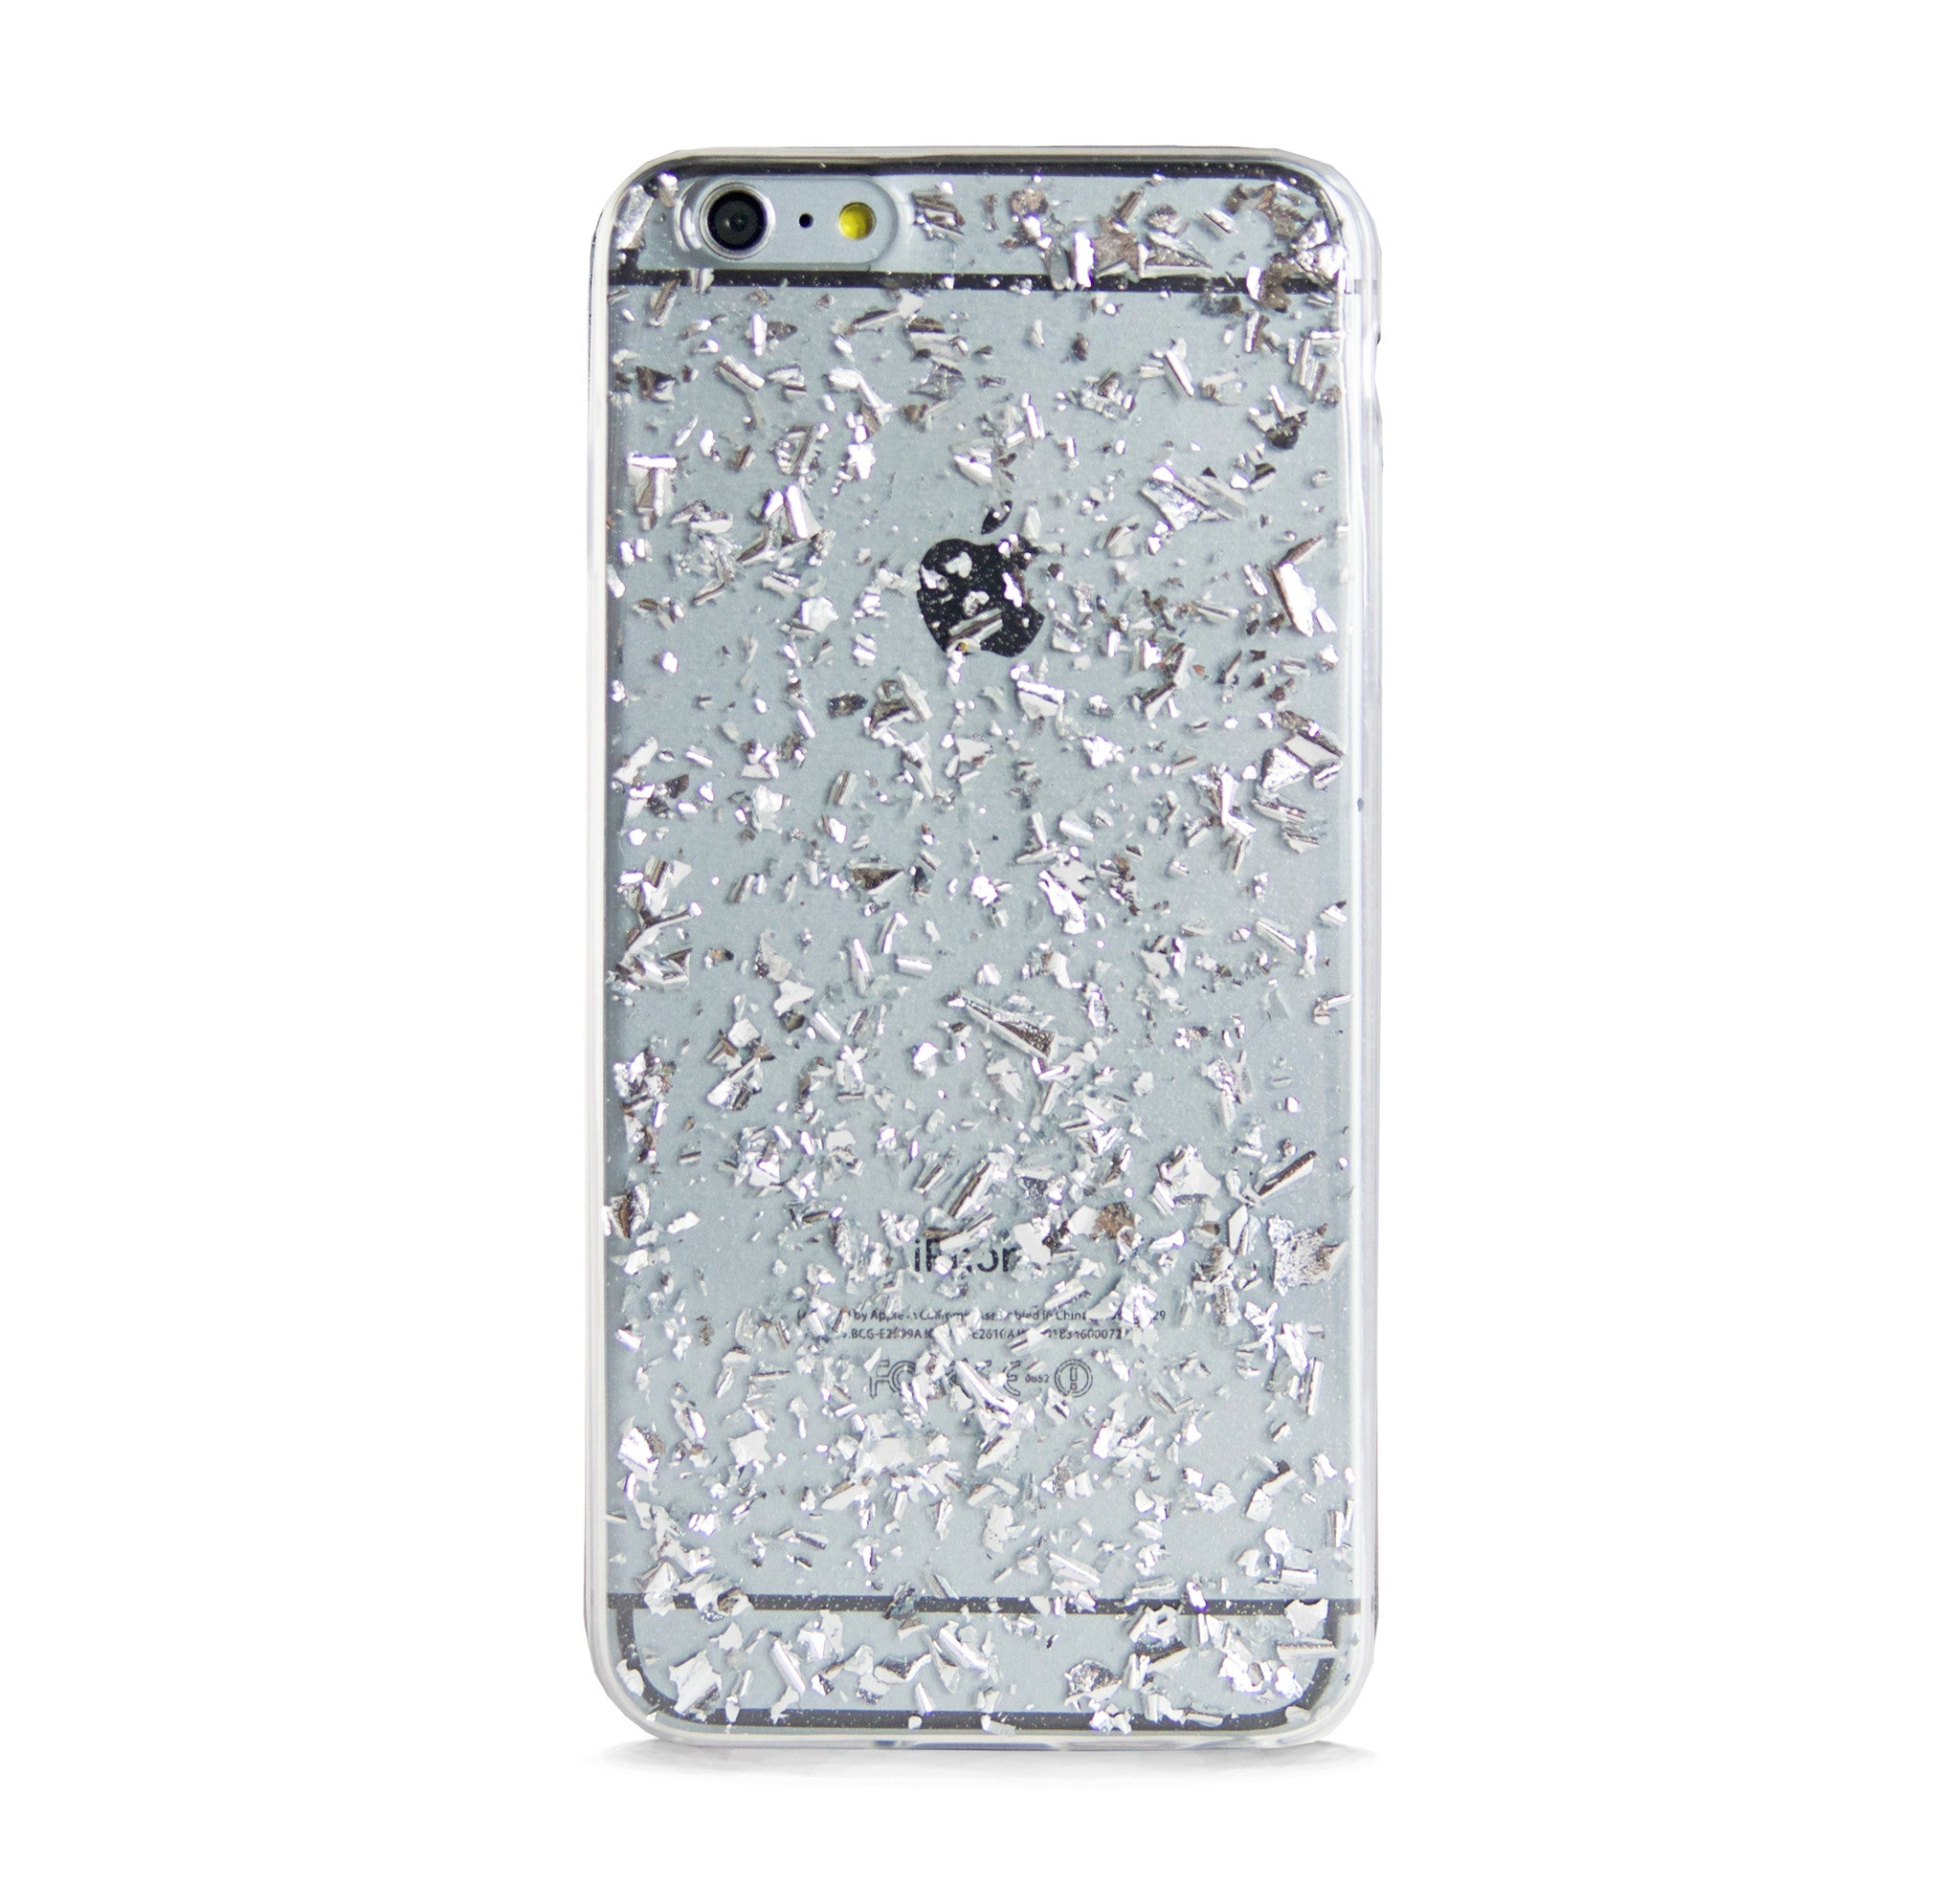 IPHONE 6/6s SILVER FRAGMENTS EFFECT RUBBER CASE